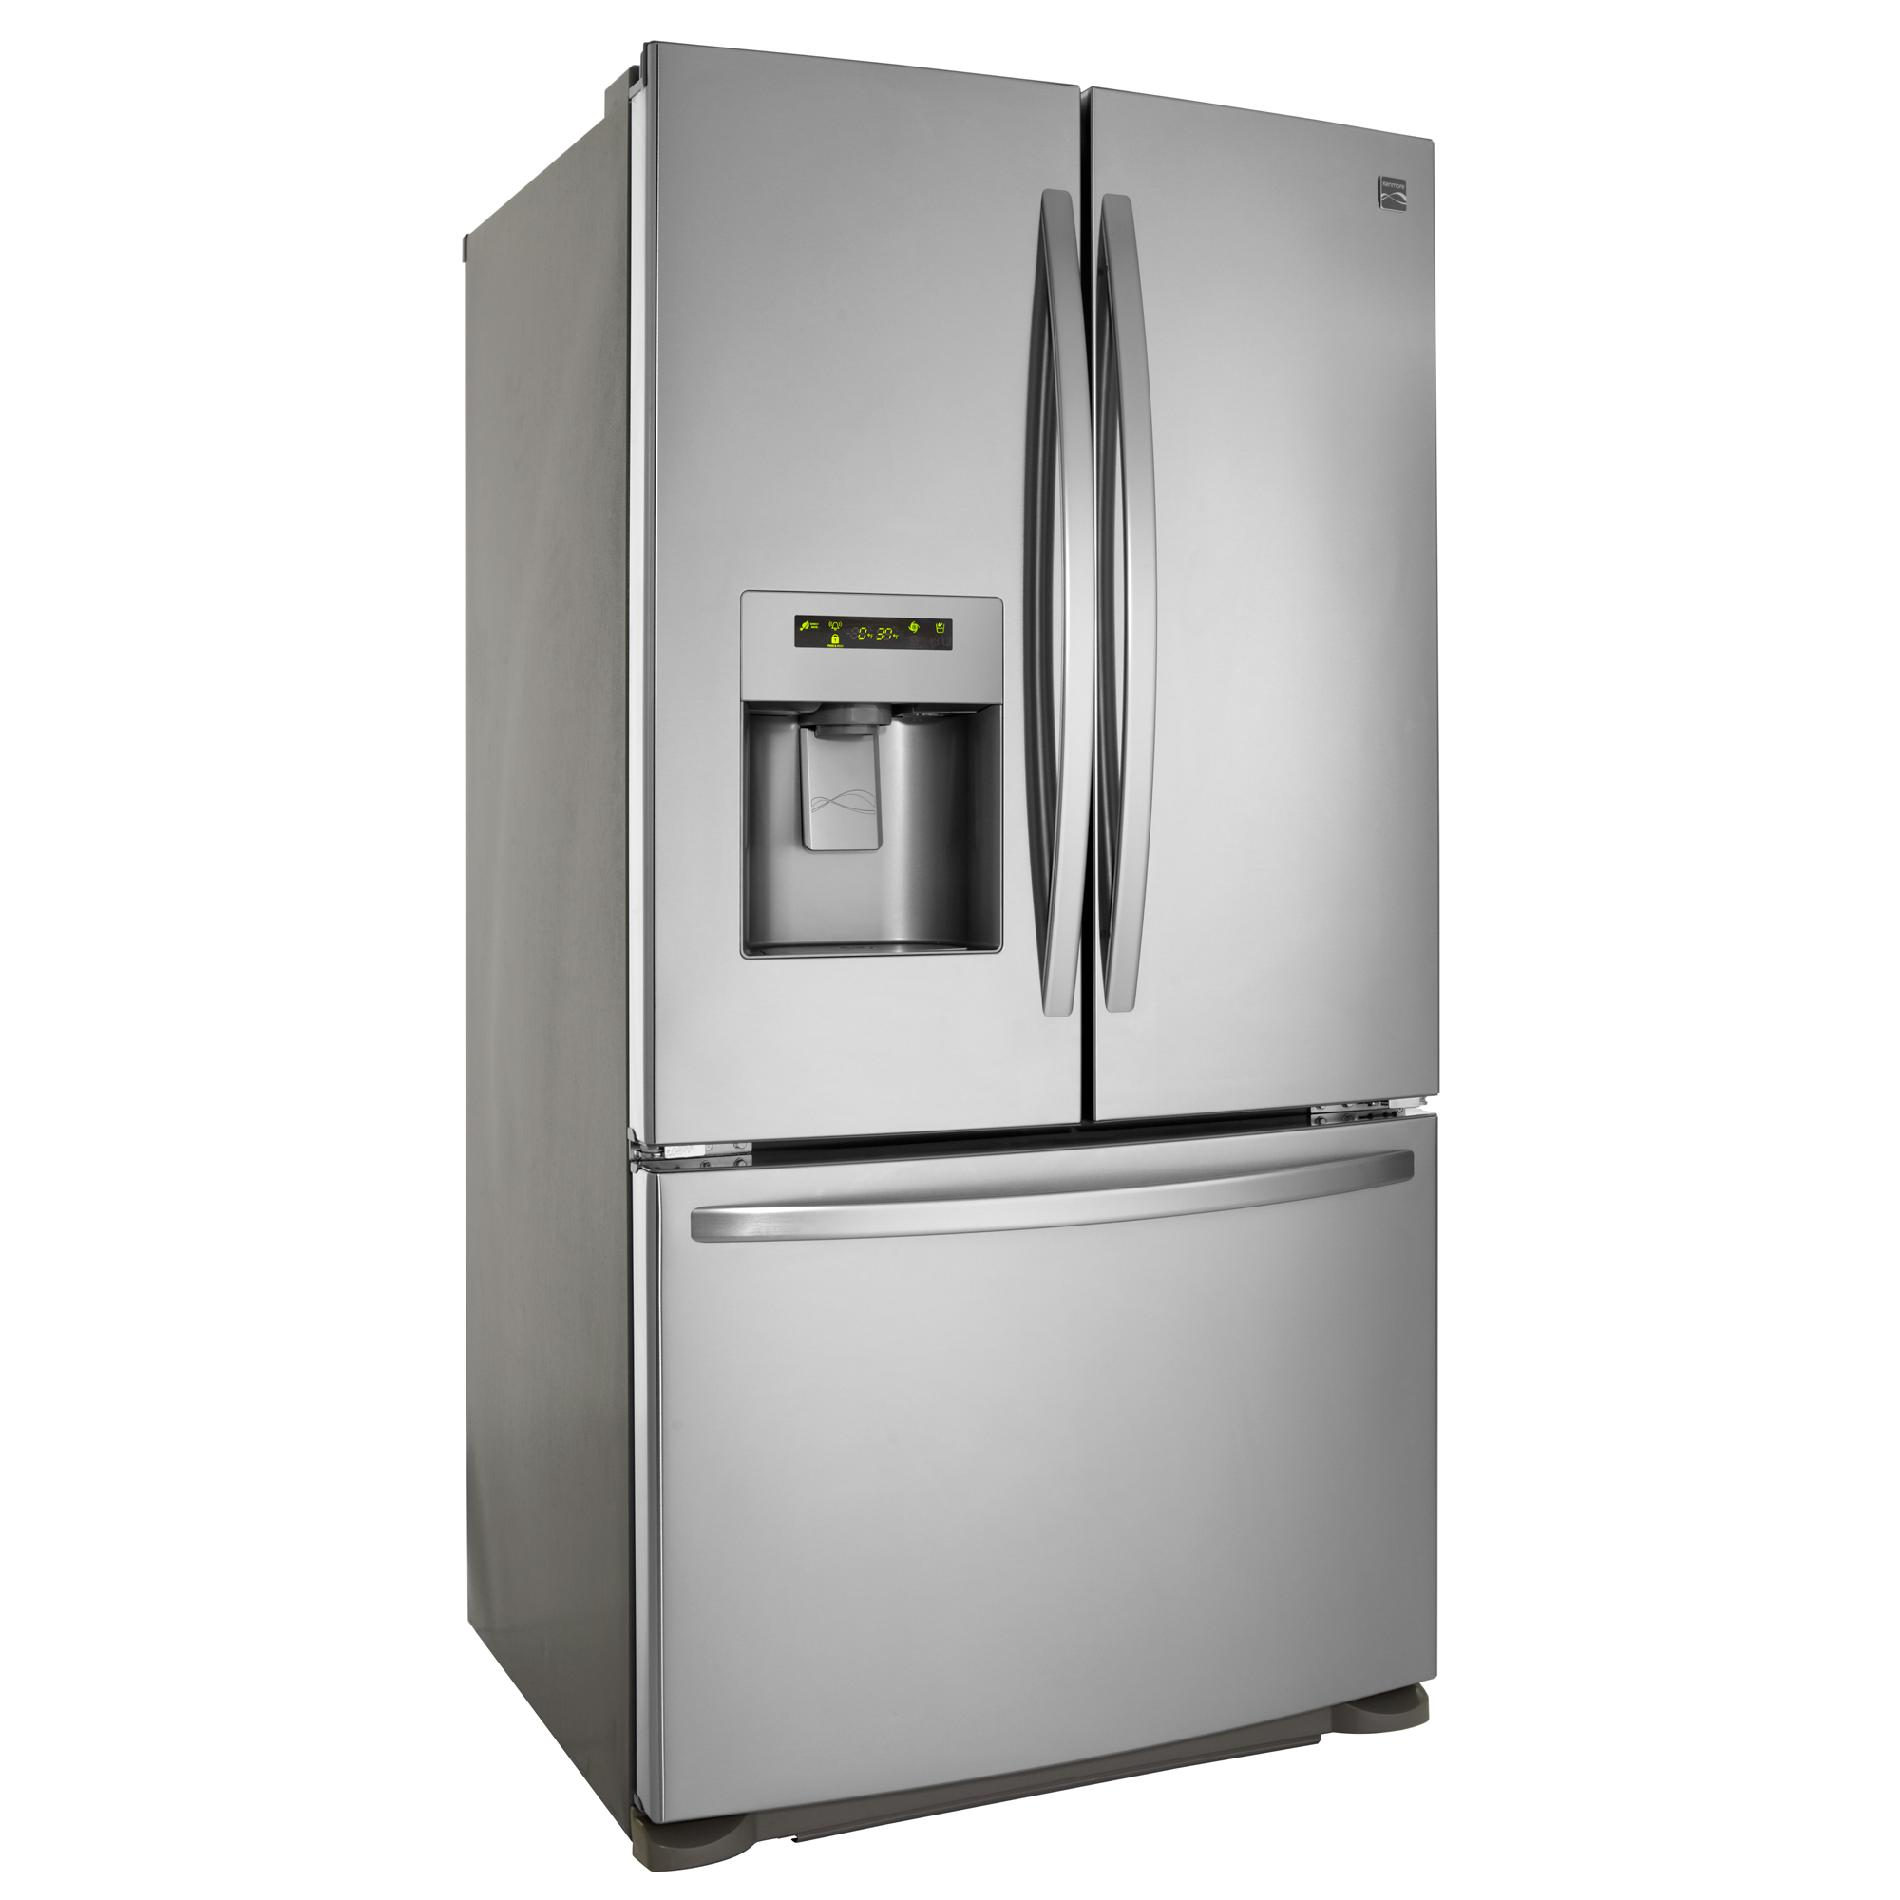 Kenmore 24.1 cu. ft. French Door Bottom-Freezer Refrigerator - Stainless Steel